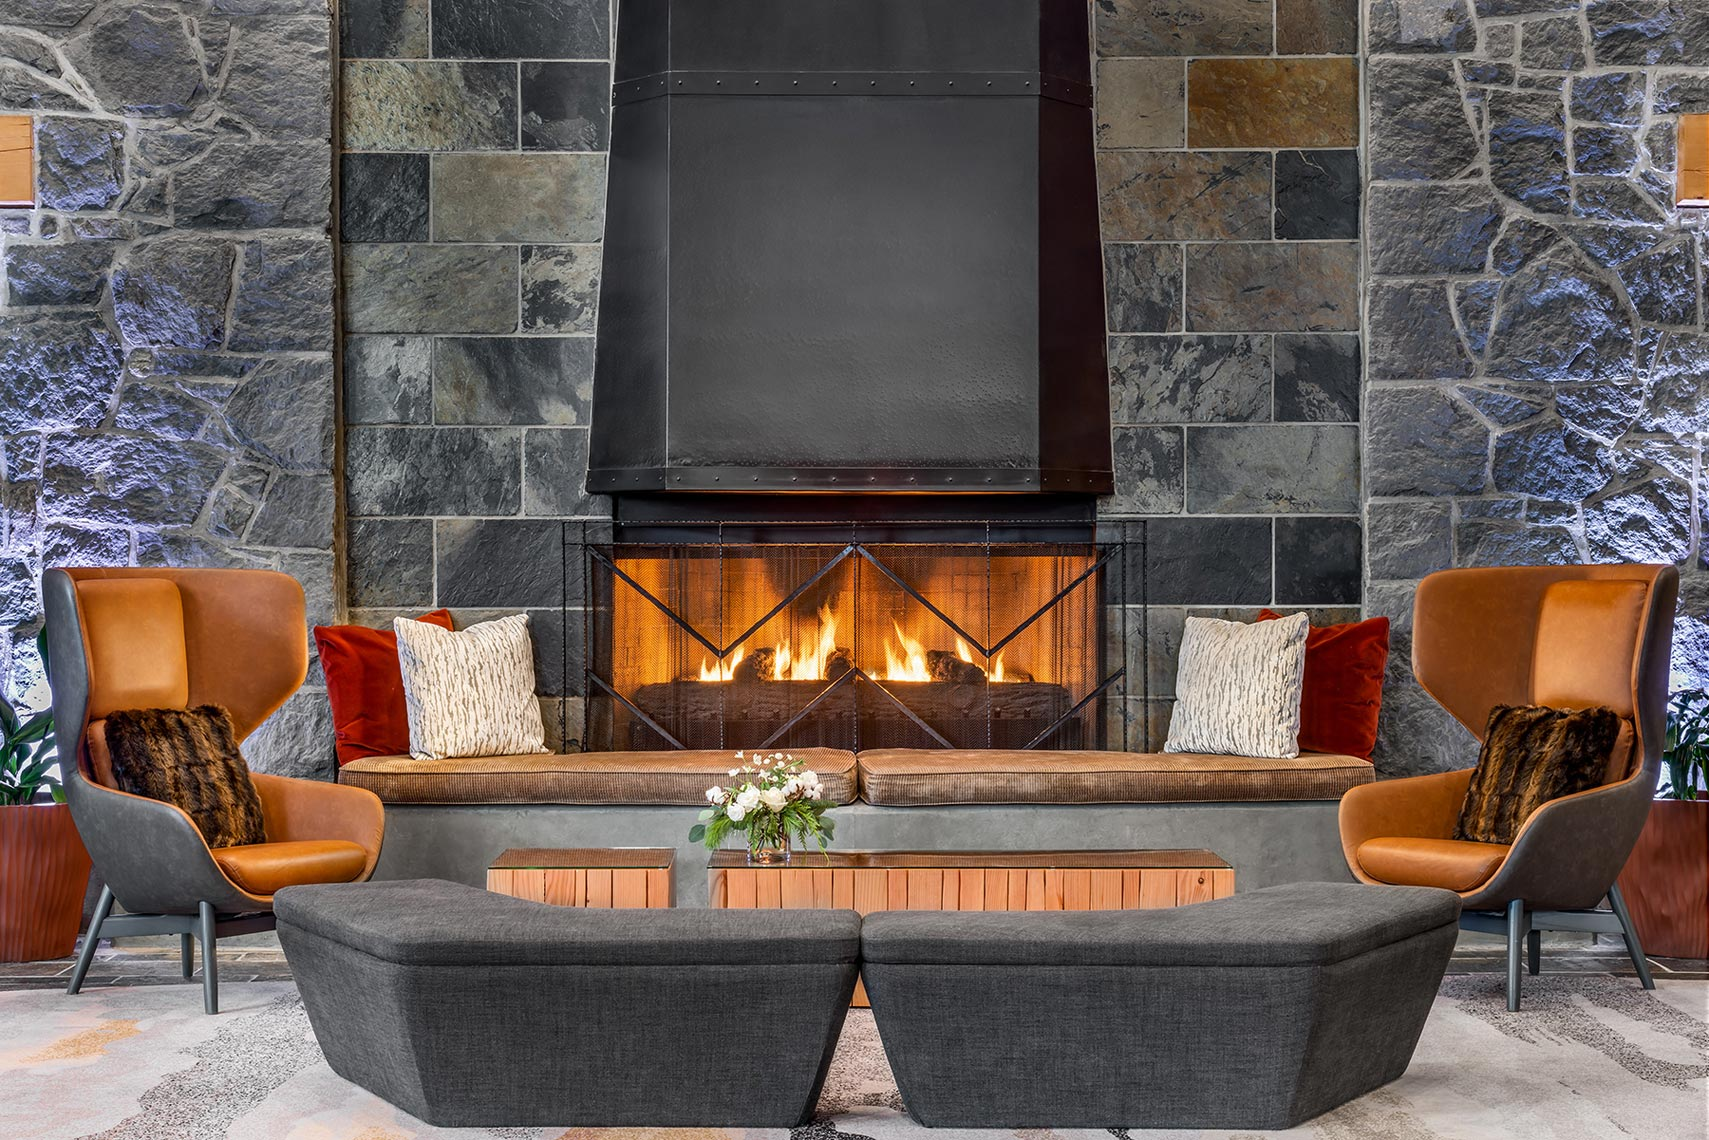 Westin_Whistlersm-004_WES_YSEWI_Fireplace